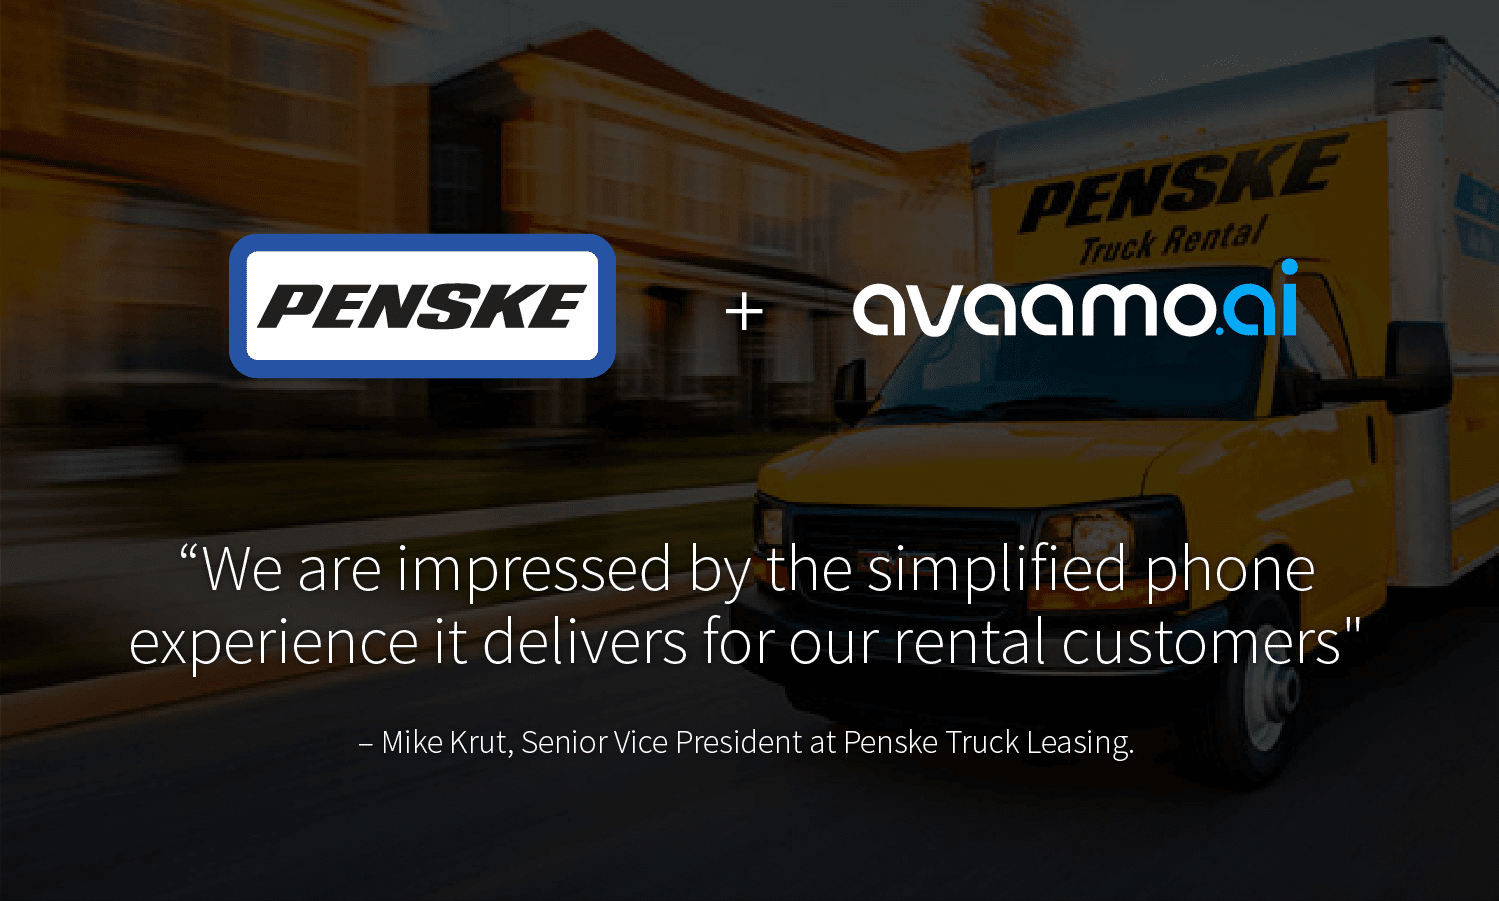 Penske selects Avaamo for conversational ai for digital agents